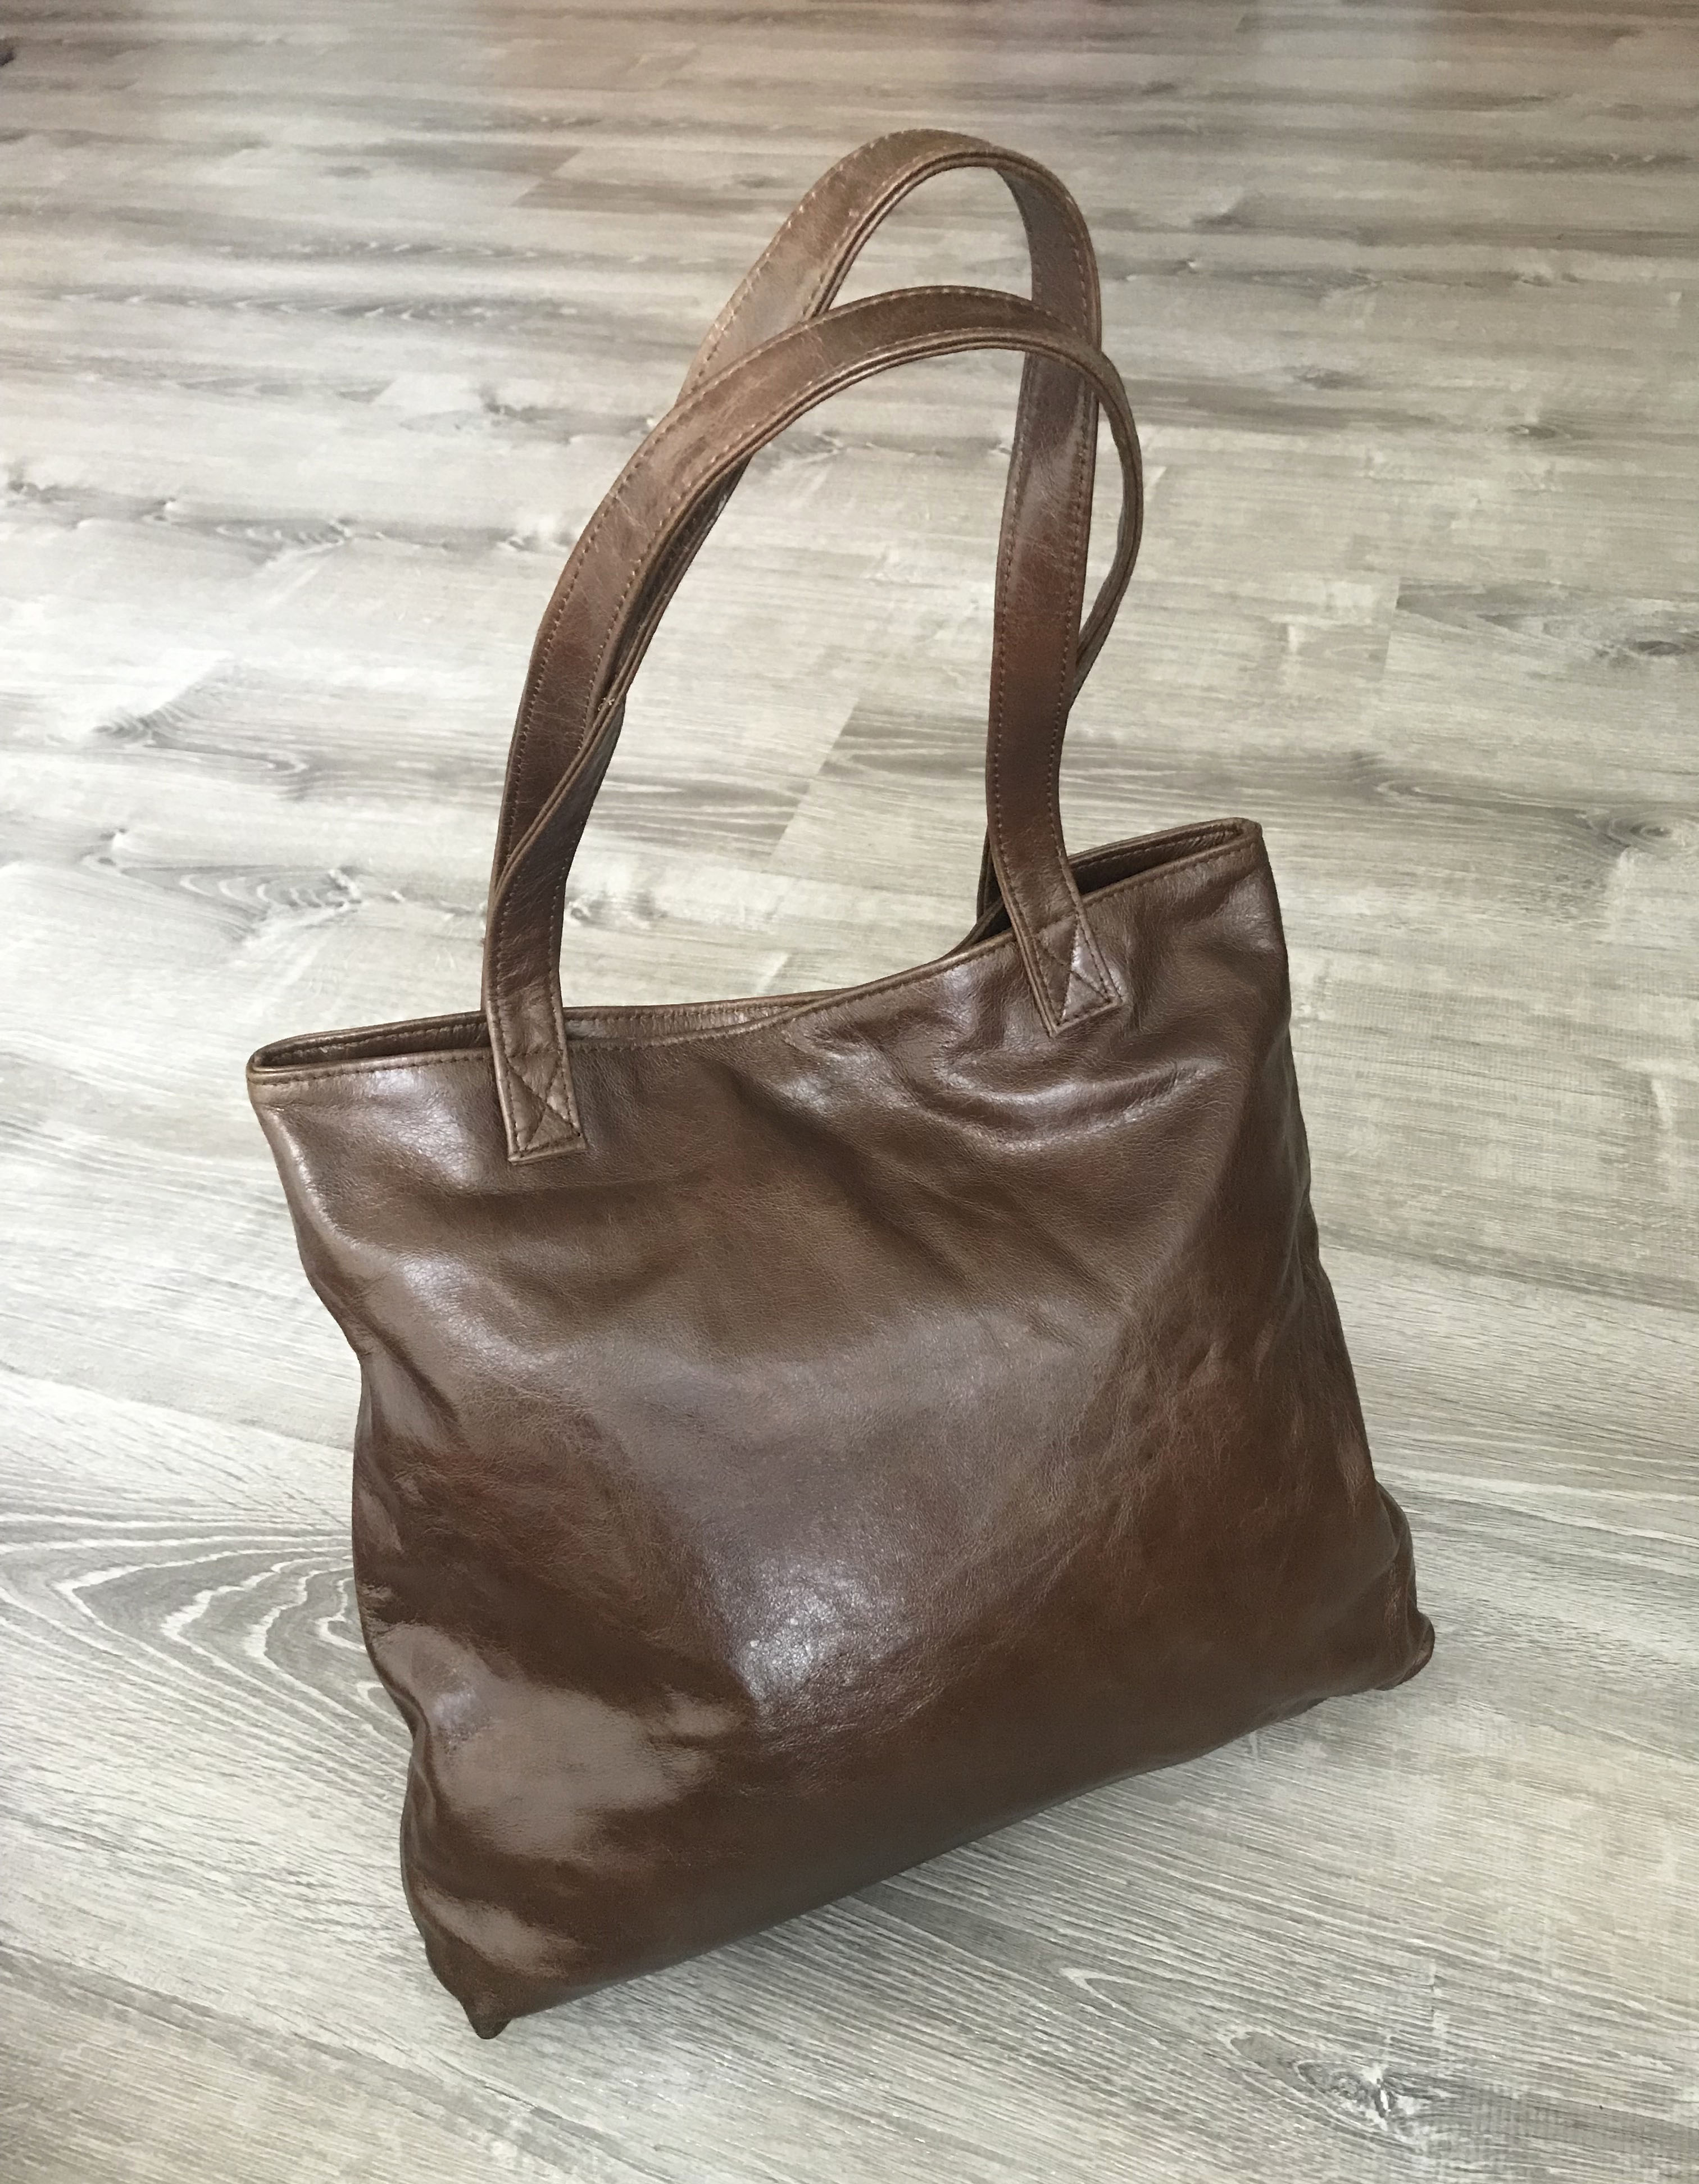 Brown Leather Tote Purse Bag - Casual Shoulder Tote - Women's Purses -  Lightweight Handmade Totes yosy - Fgalaze Genuine Leather Bags & Accessories